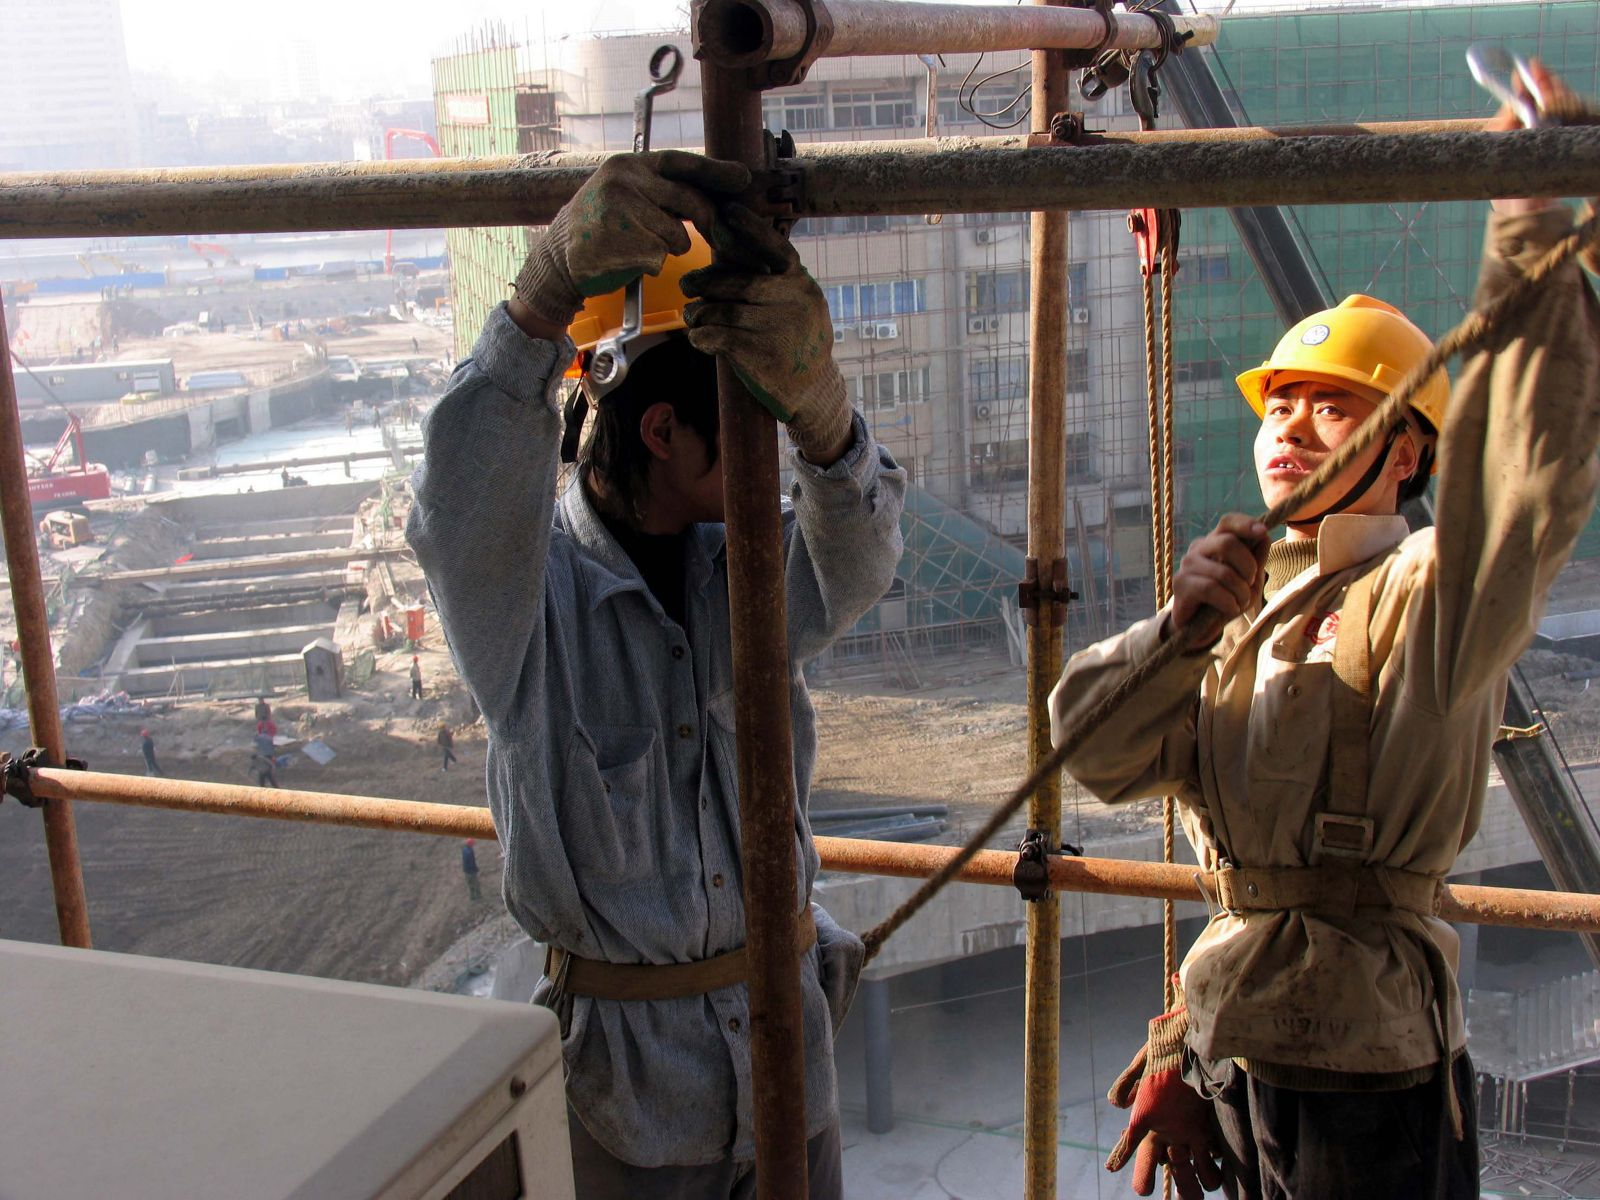 Construction workers at work, Tianjin. China.